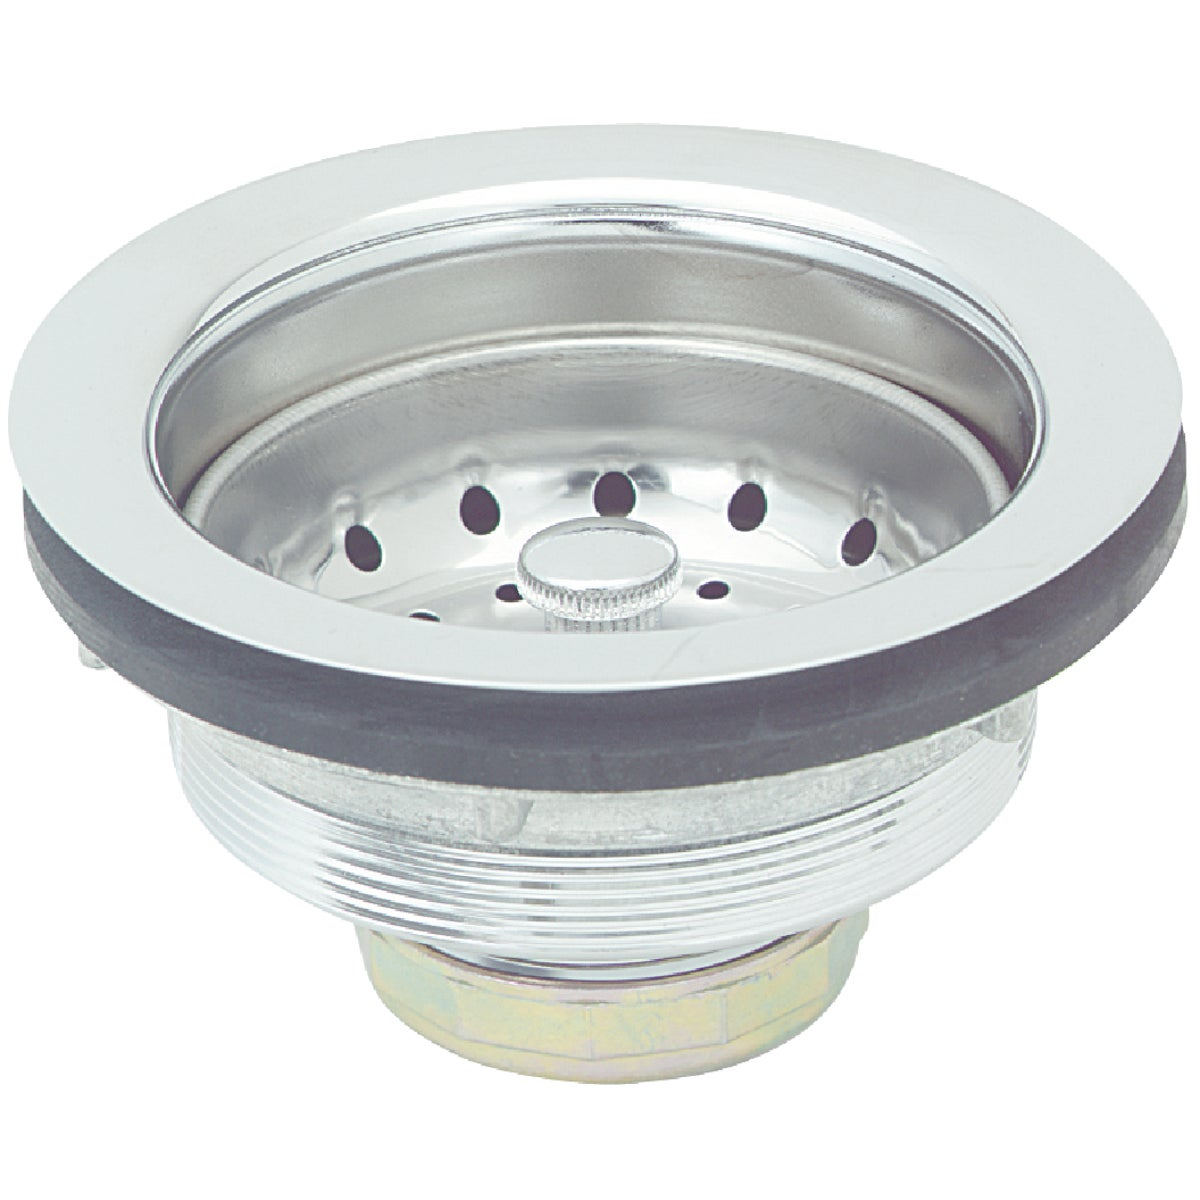 FIXED POST SS STRAINER - 2431NPC by Plumb Pak/keeney Mfg